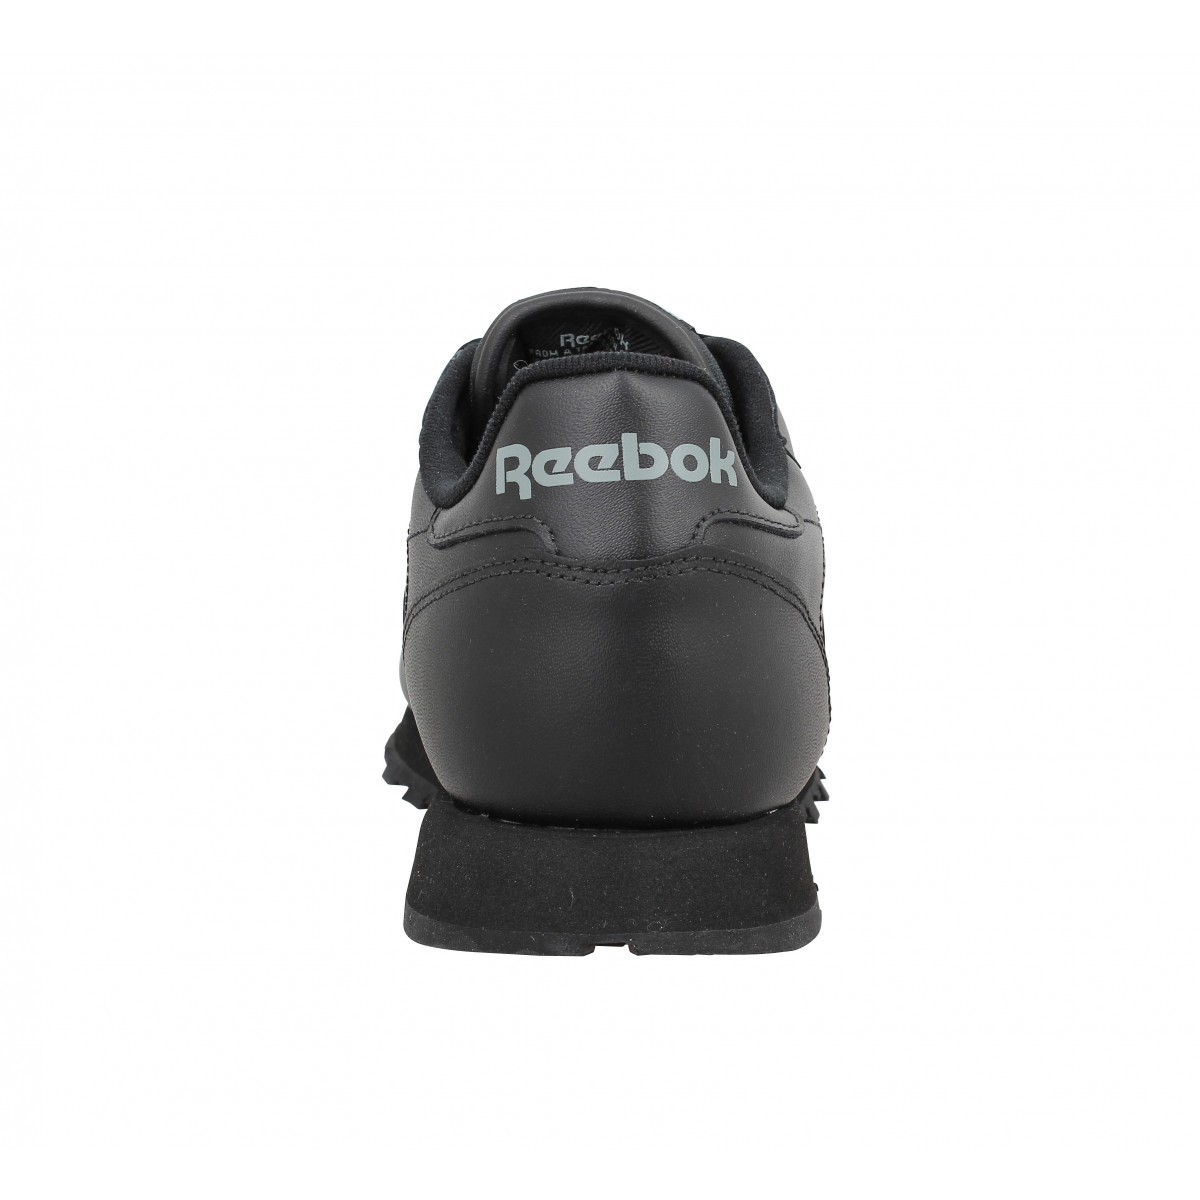 nice shoes no sale tax quality design Reebok classic cuir homme noir   Fanny chaussures